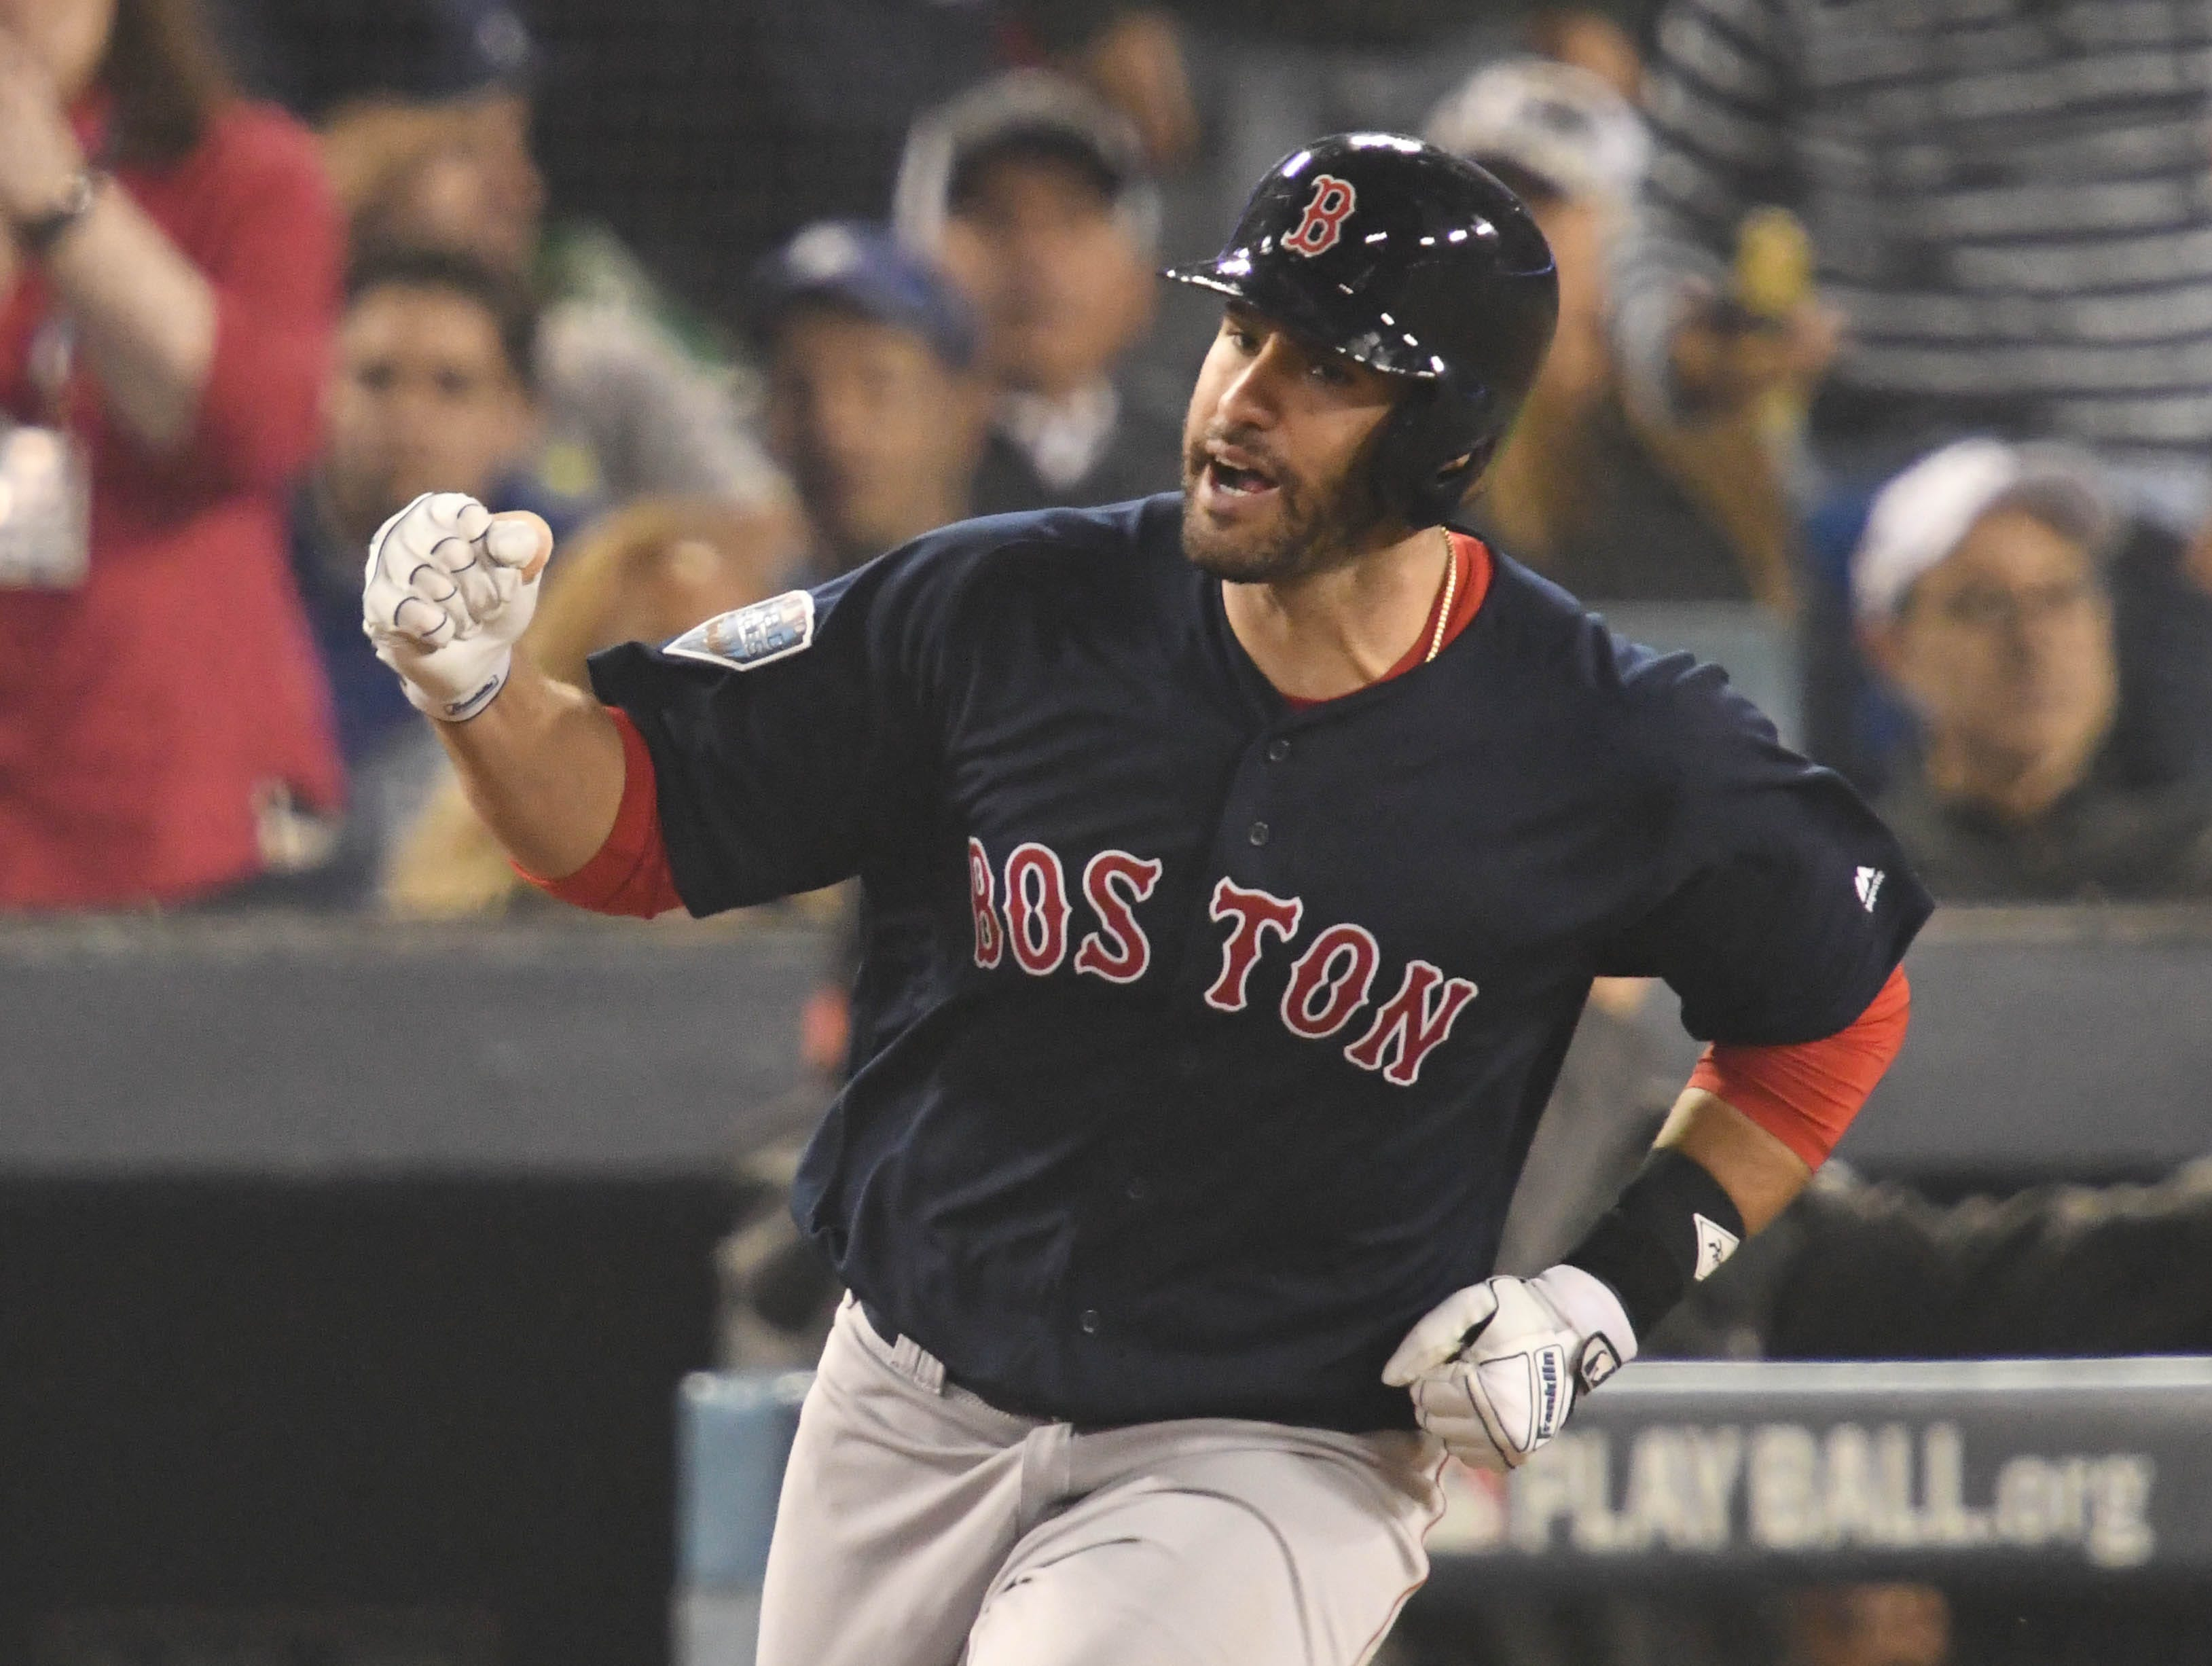 5. J.D. Martinez, Boston Red Sox outfielder.